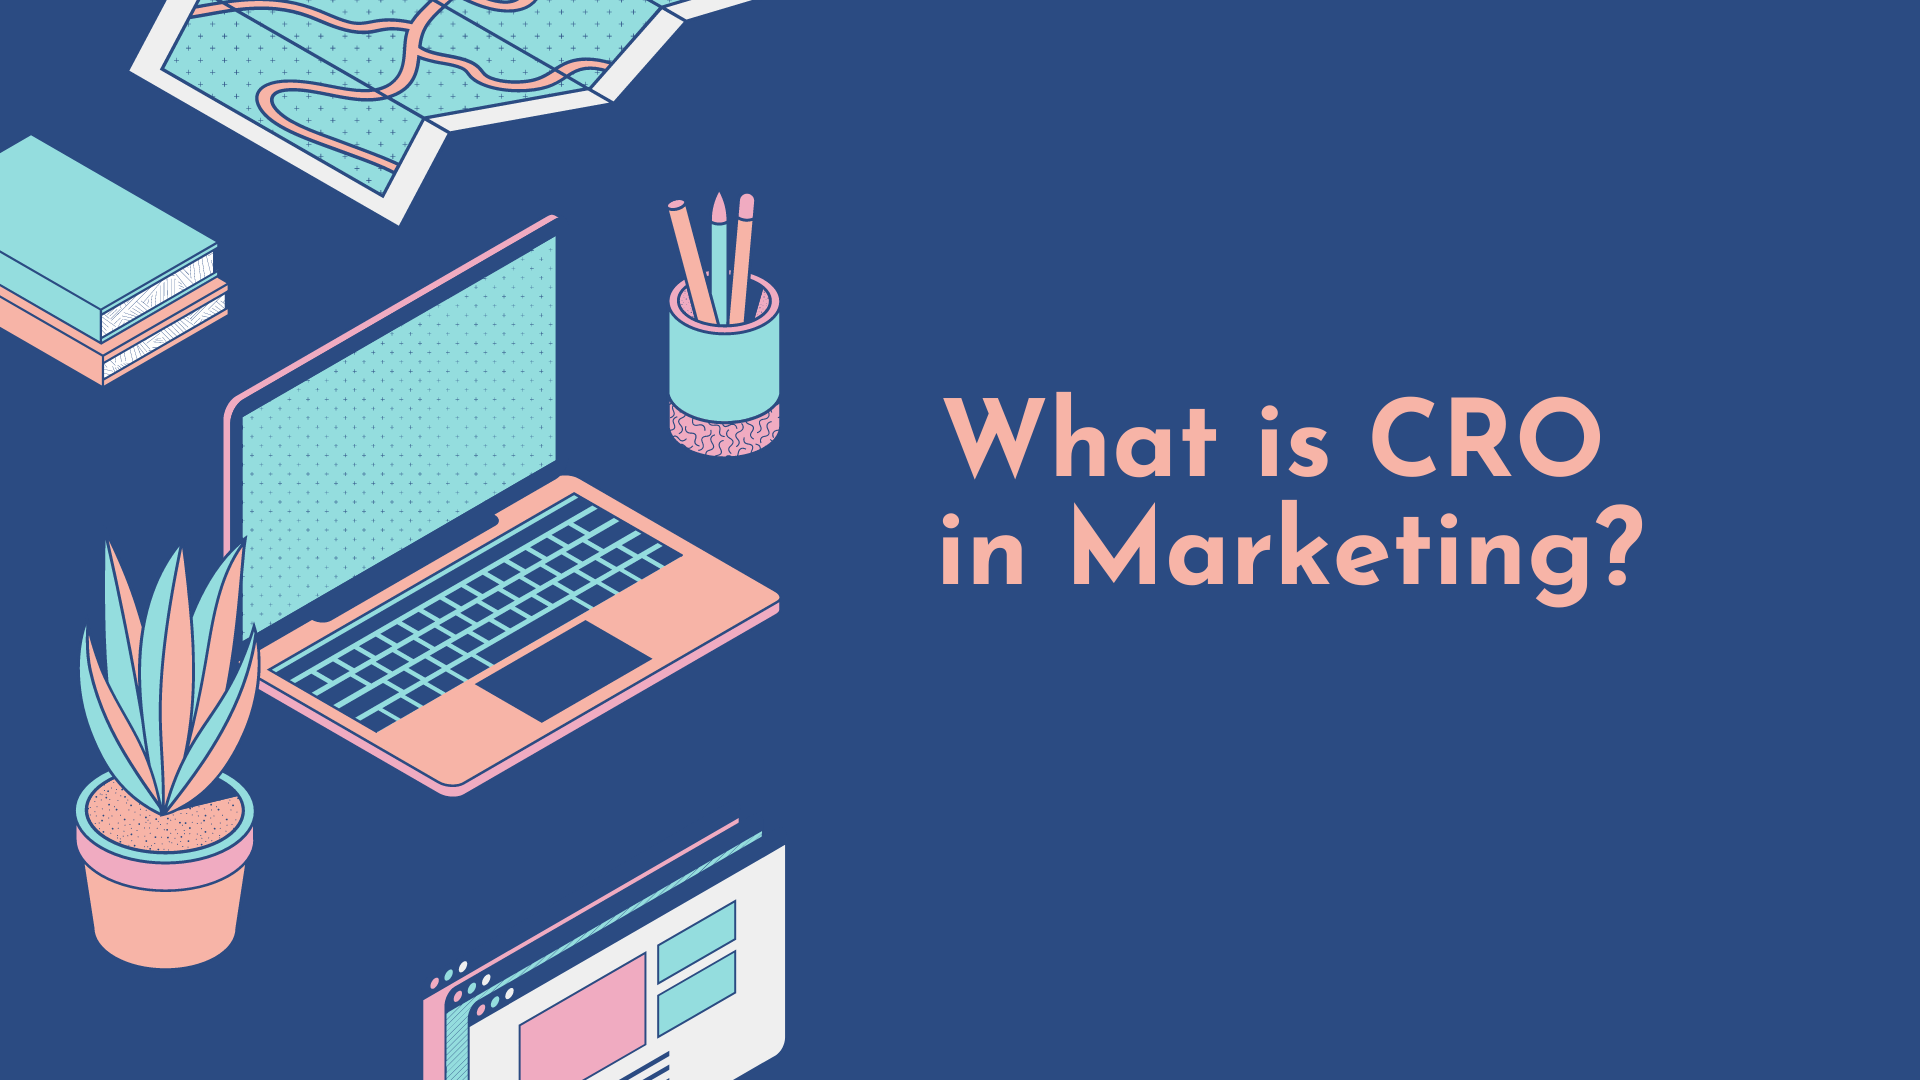 What is CRO in Marketing?